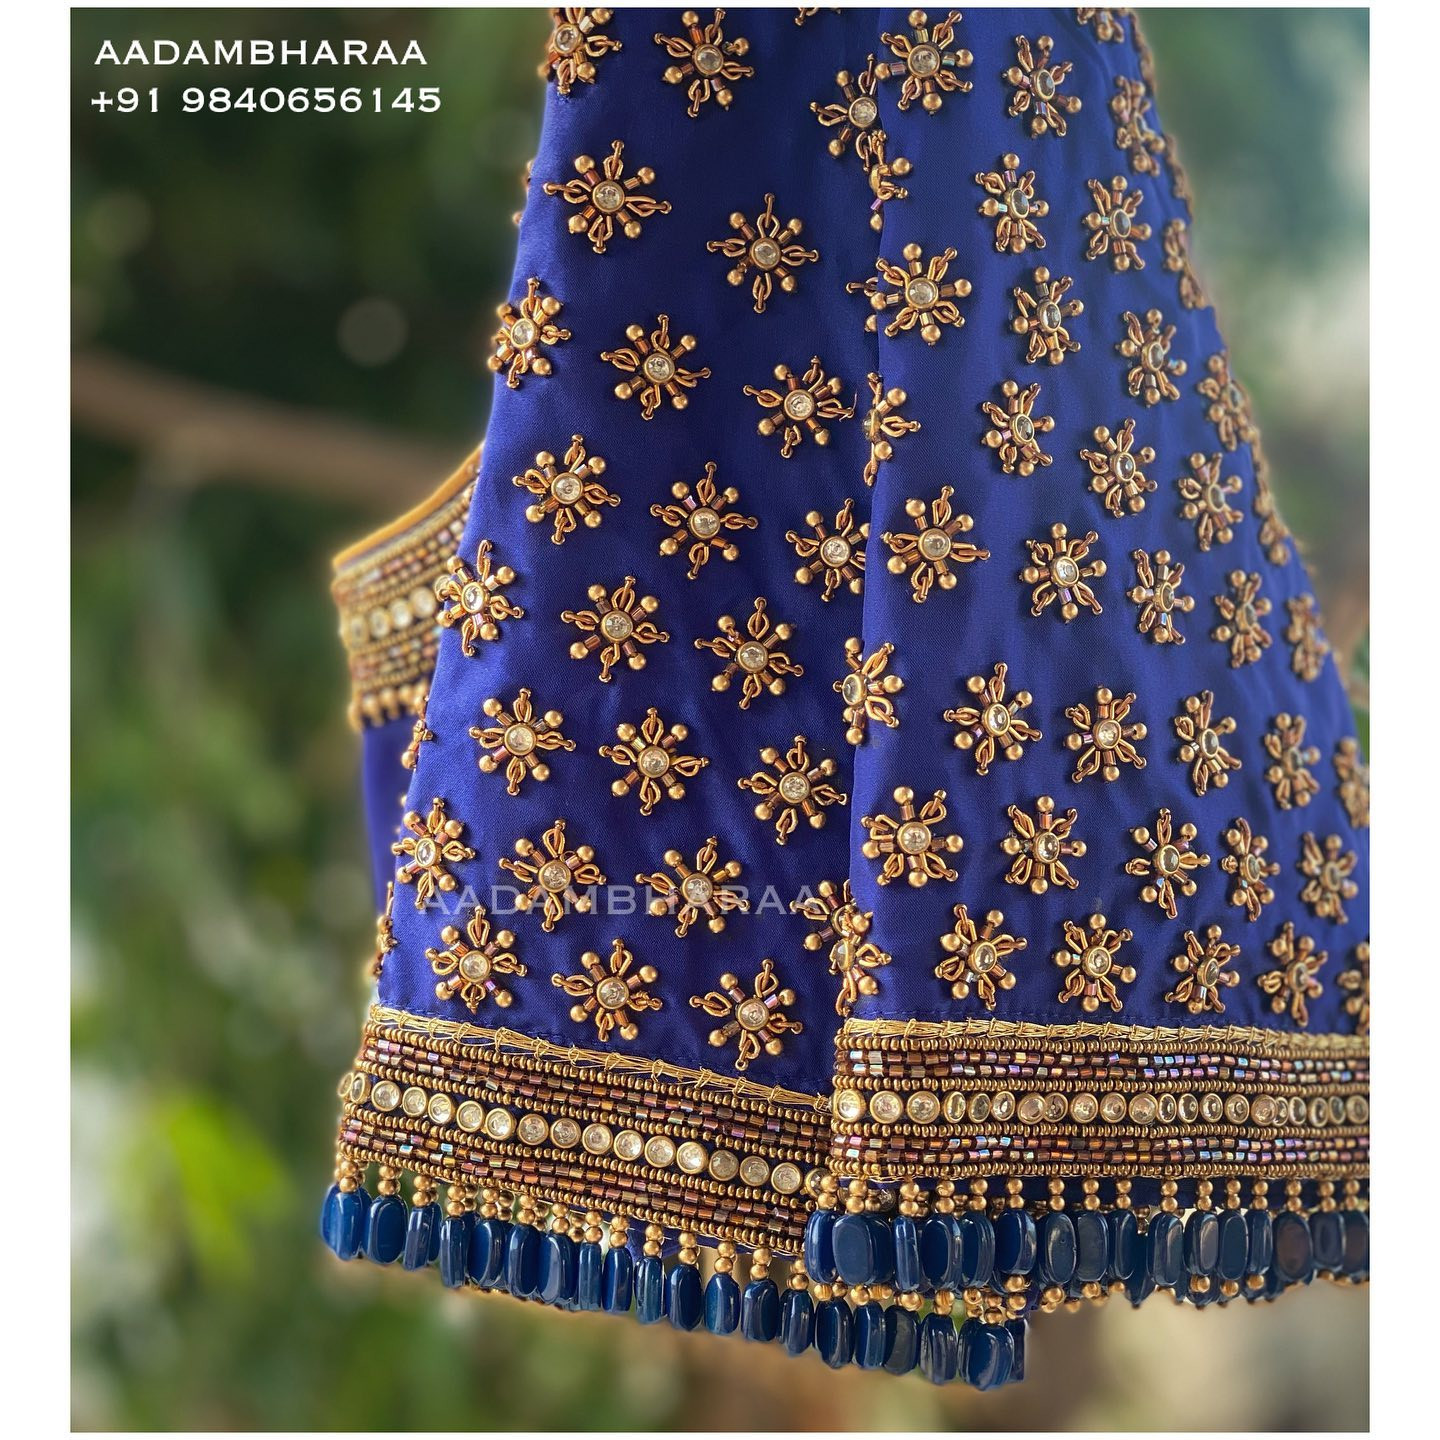 Stunning blue color bridal blouse sleeve with bead and stone aari work. Blue Bridal Blouse. 2021-09-18